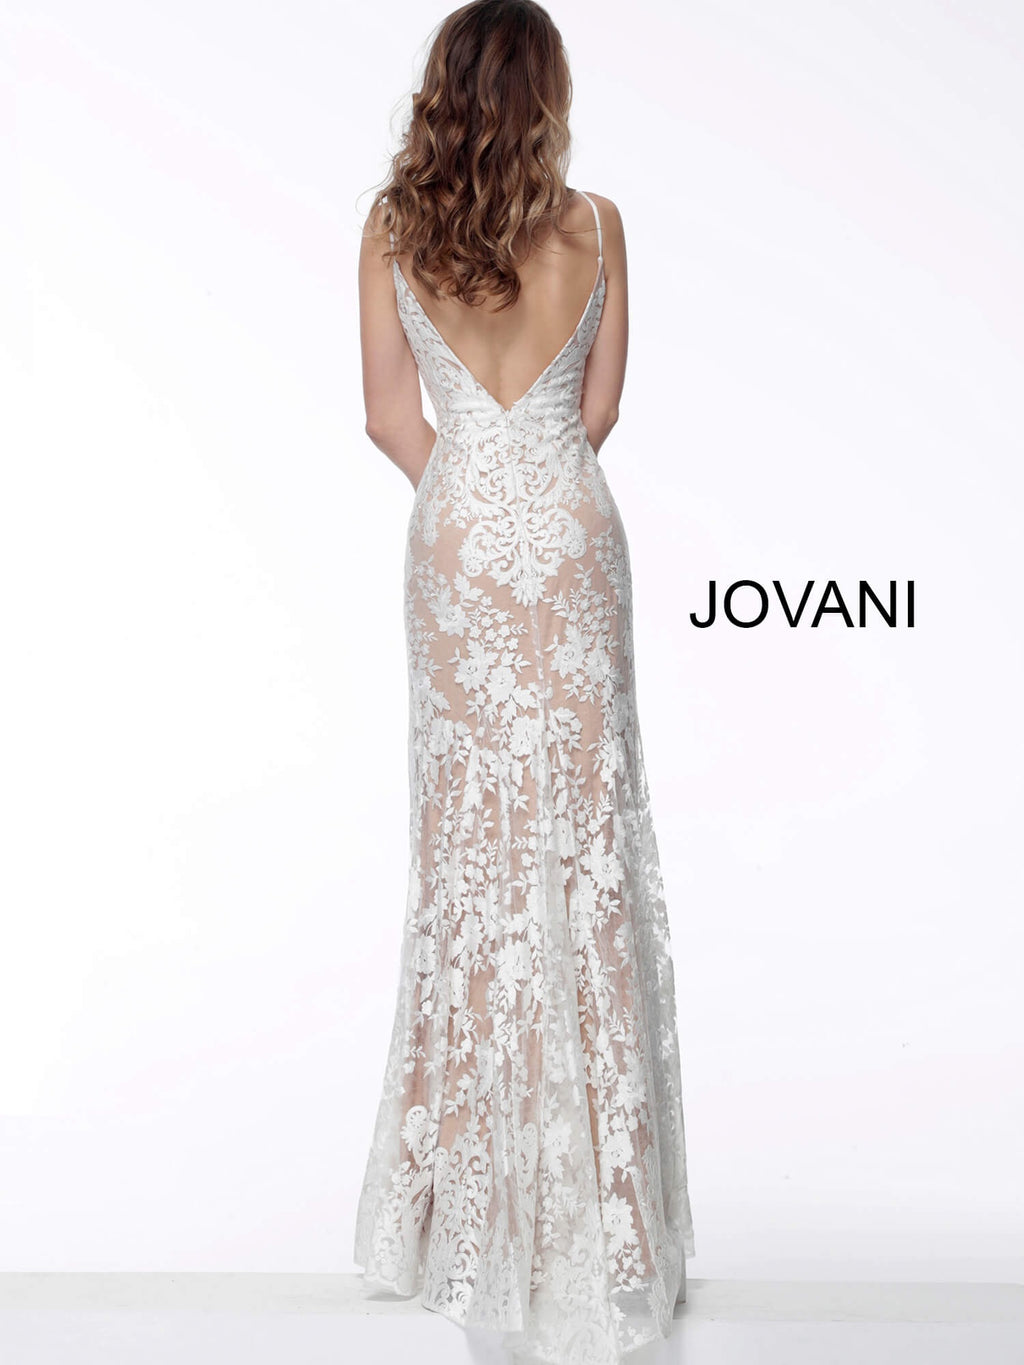 JOVANI 63754 Lace Evening Dress - CYC Boutique